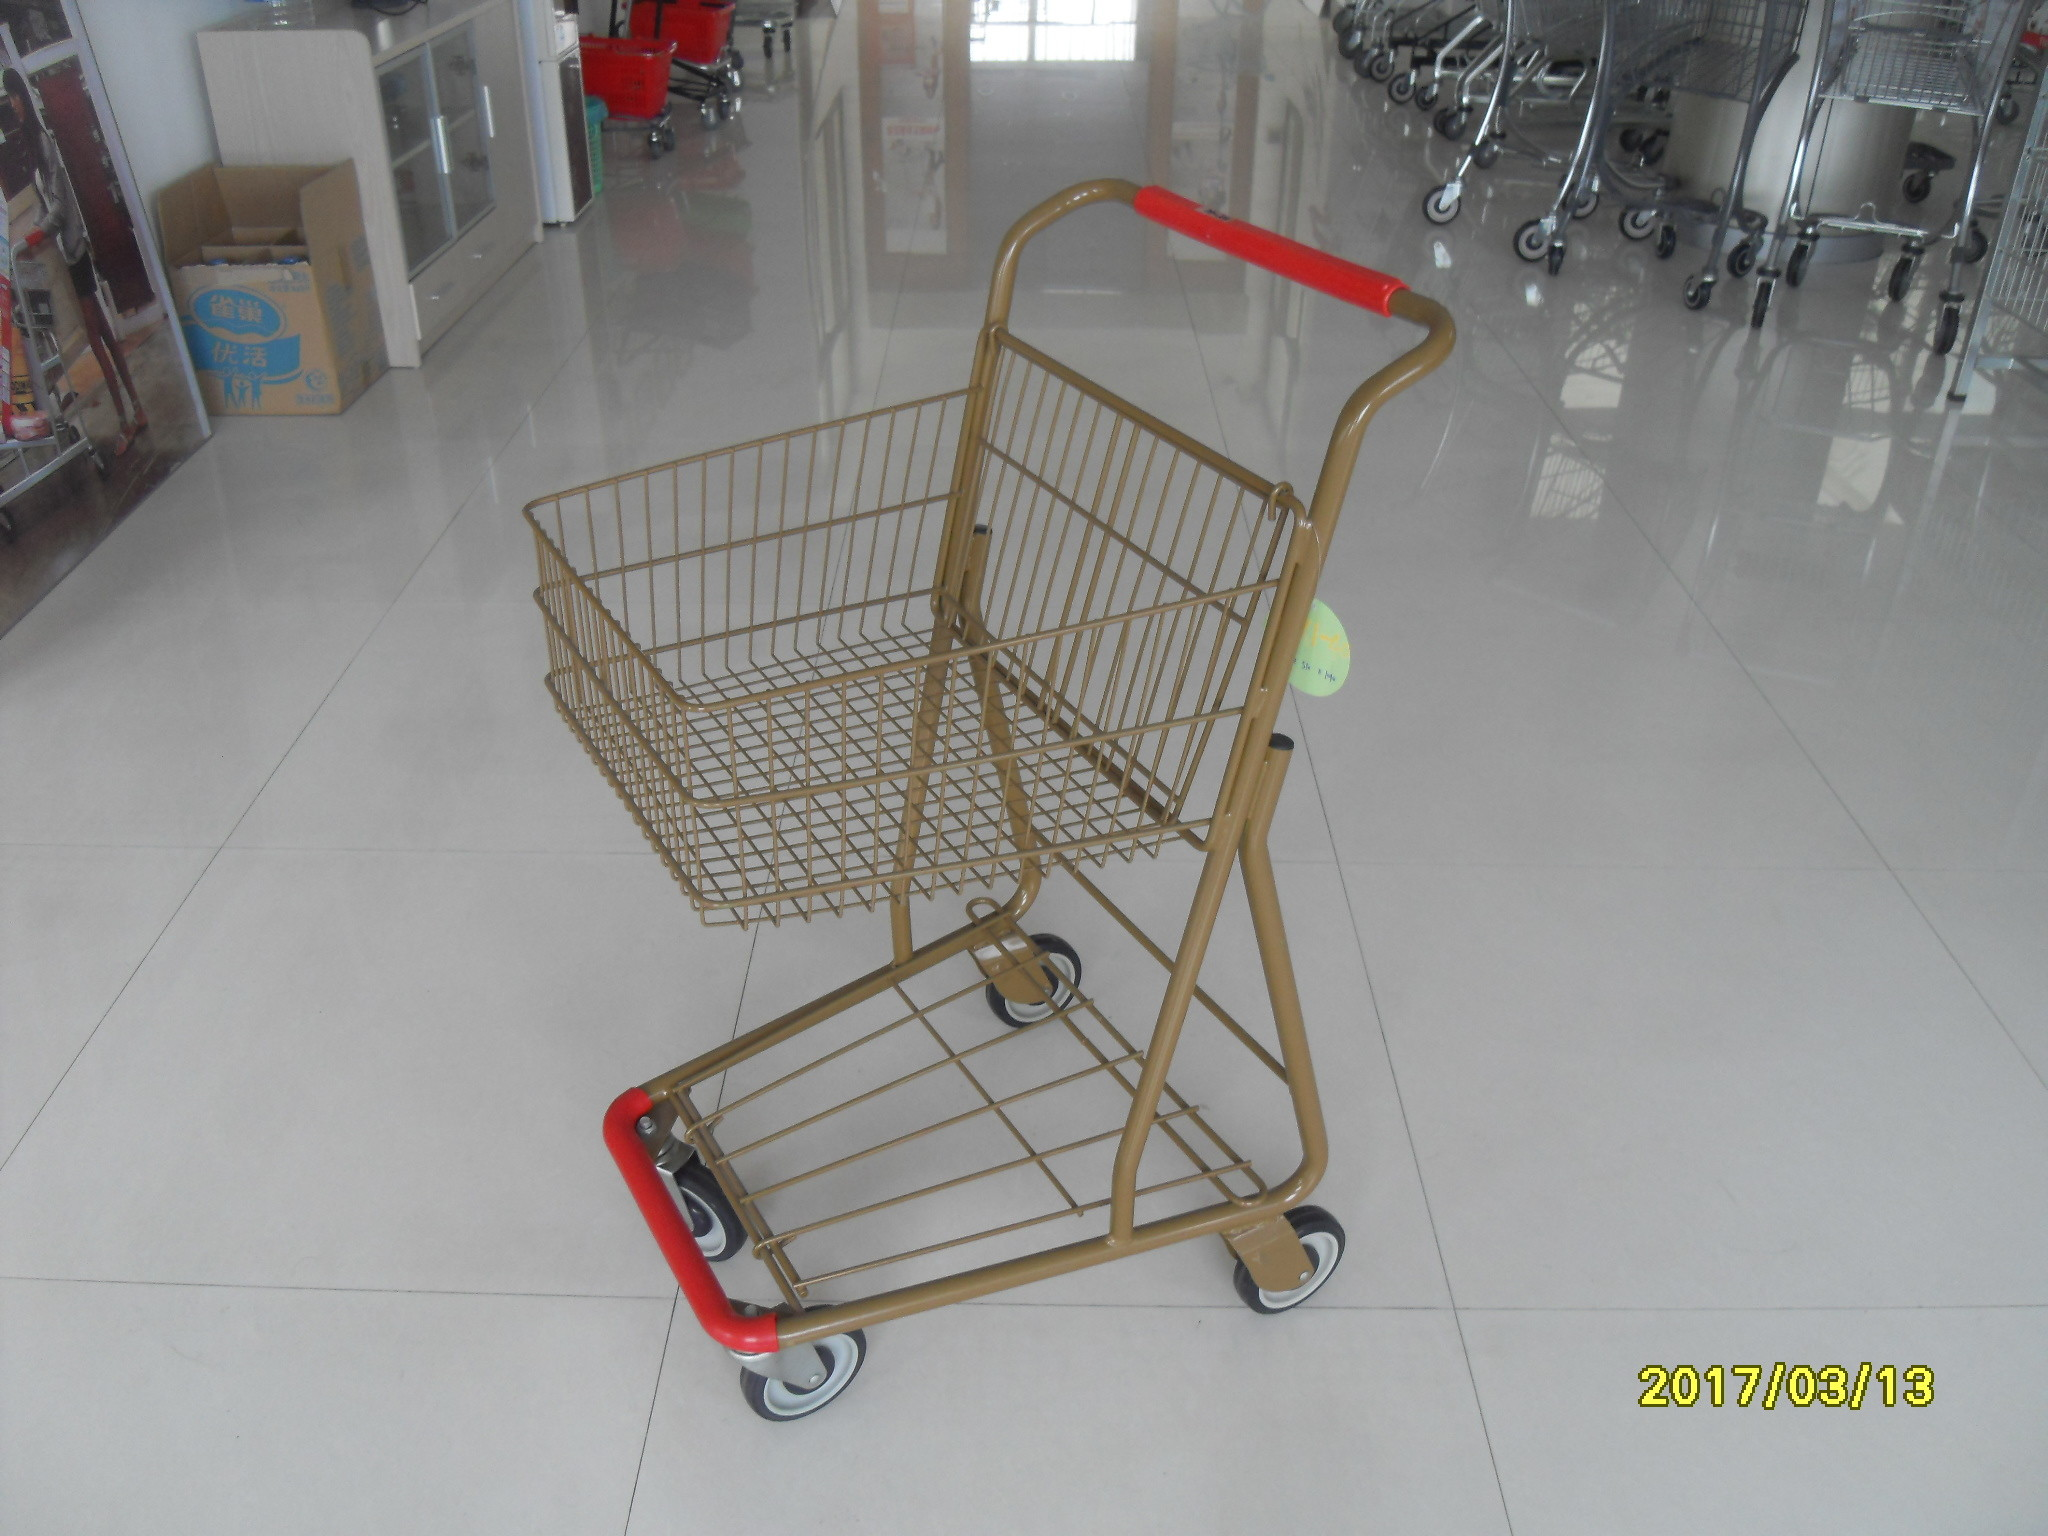 Supermarket 40 L Singel Basket Metal Shopping Cart With Wheels And Front Bumper